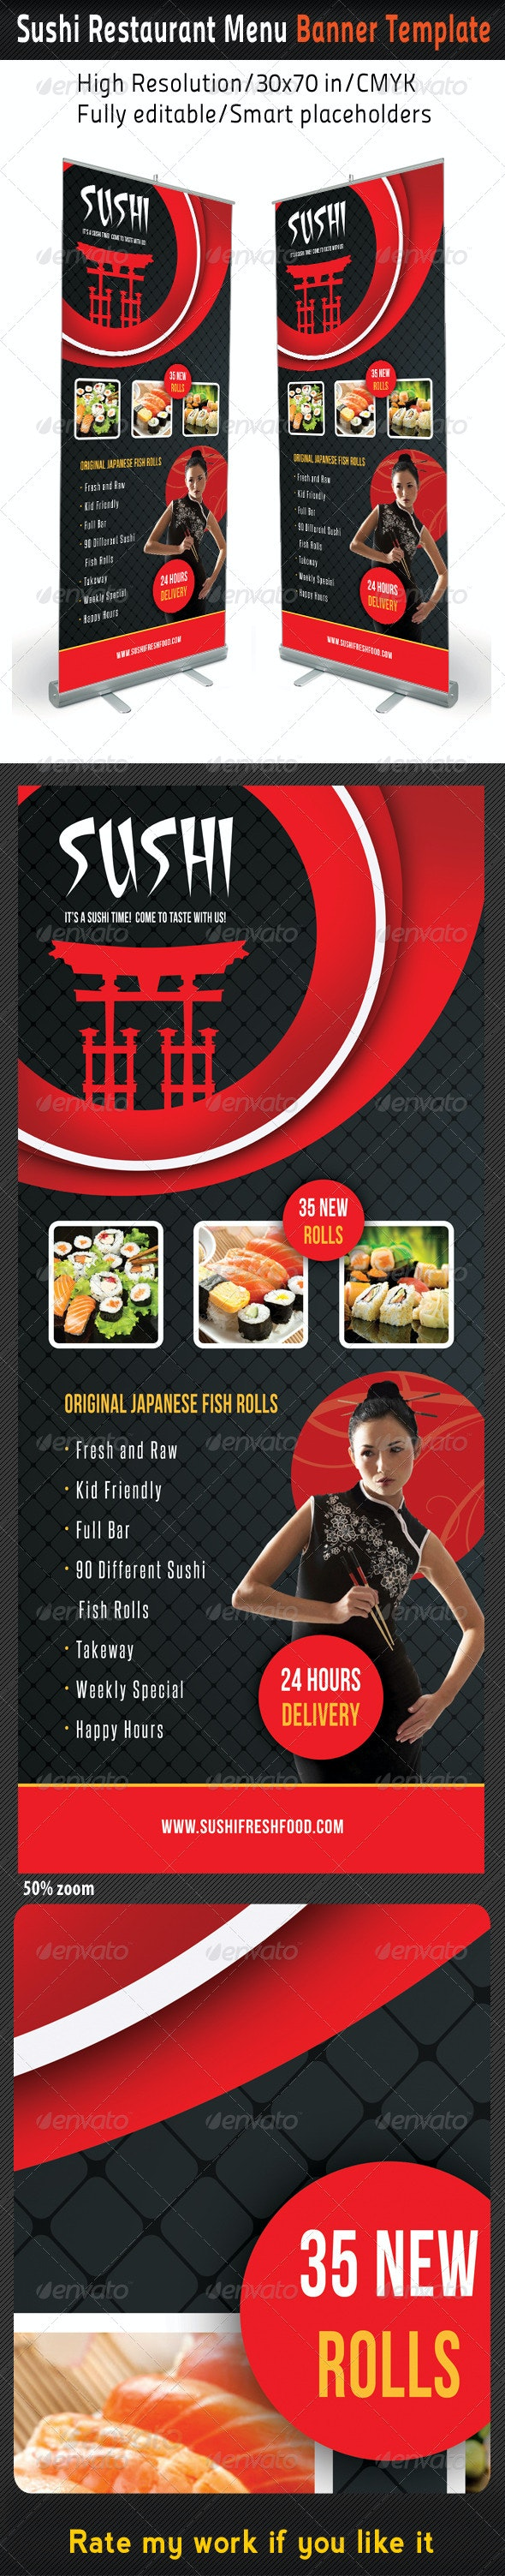 Sushi Restaurant Menu Banner Template 03 - Signage Print Templates